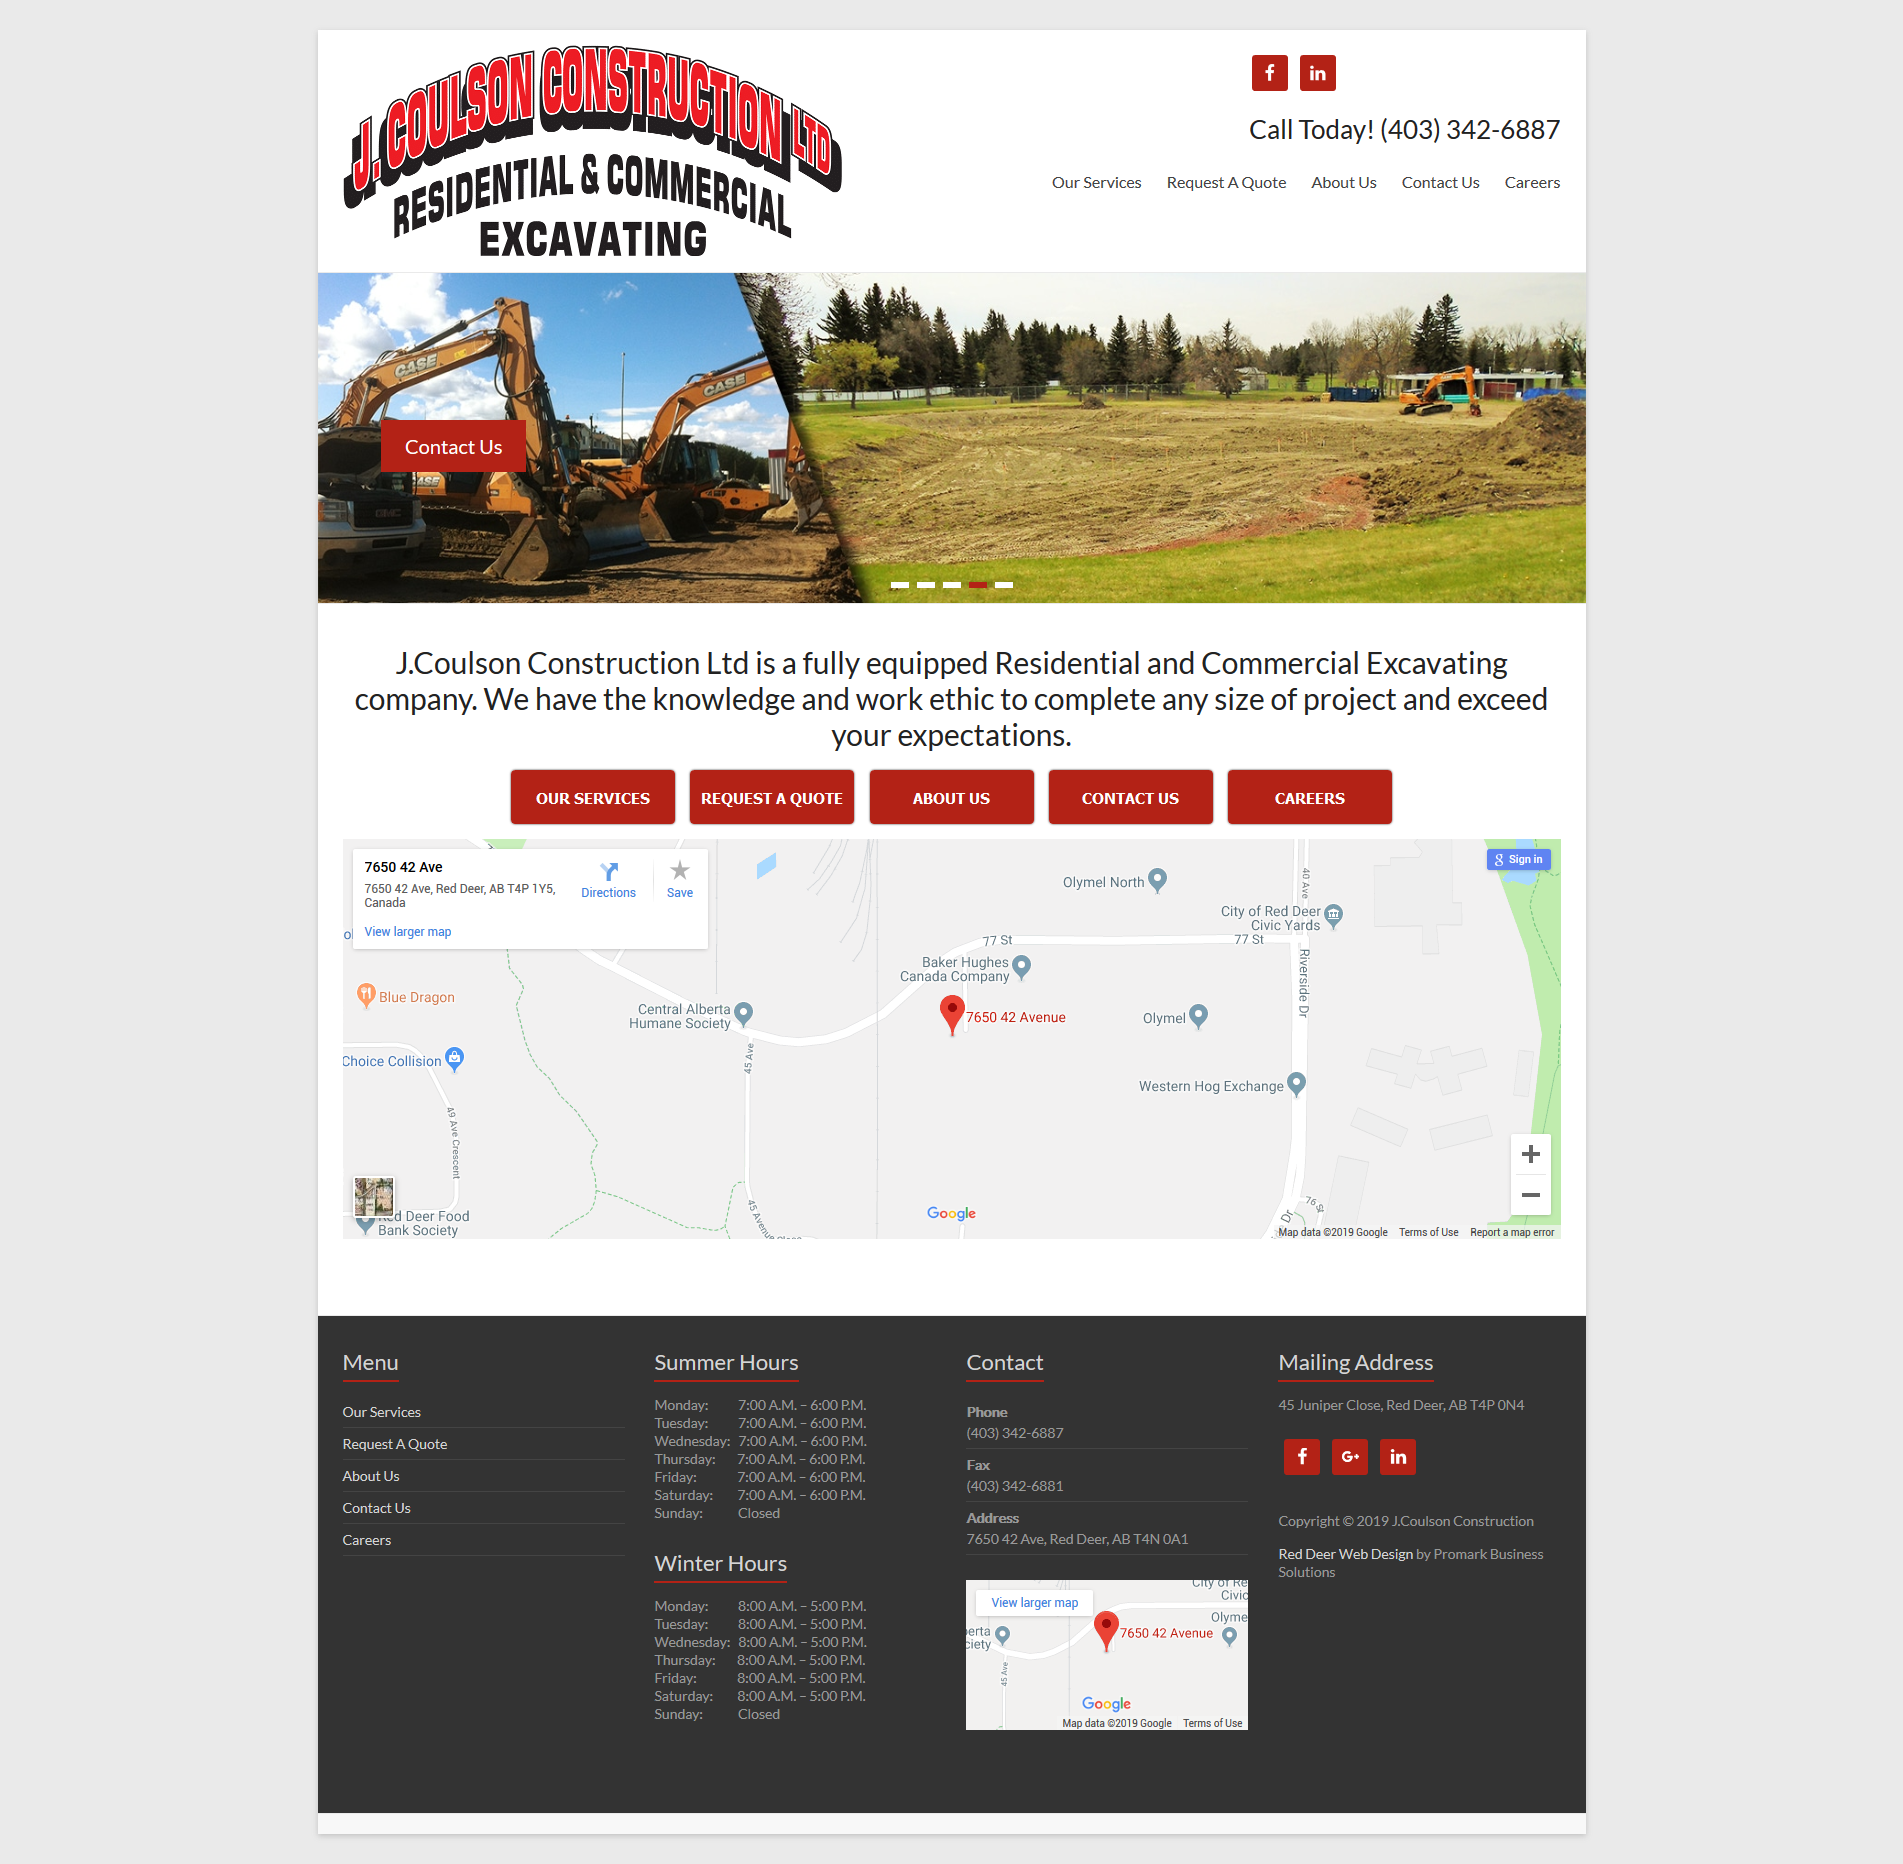 J Coulson Construction Ltd A Fully Equipped Excavating Company In Red Deer Alberta Http Jcoulson Ca Redd Construction Red Deer Alberta Business Website